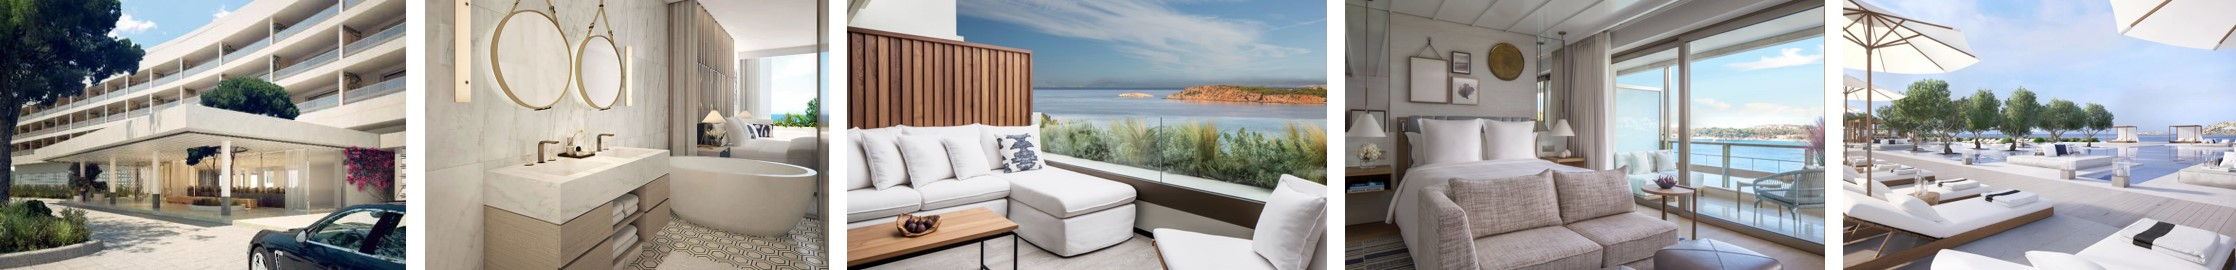 NEW Four Seasons Luxury Hotel Debuts in Greece